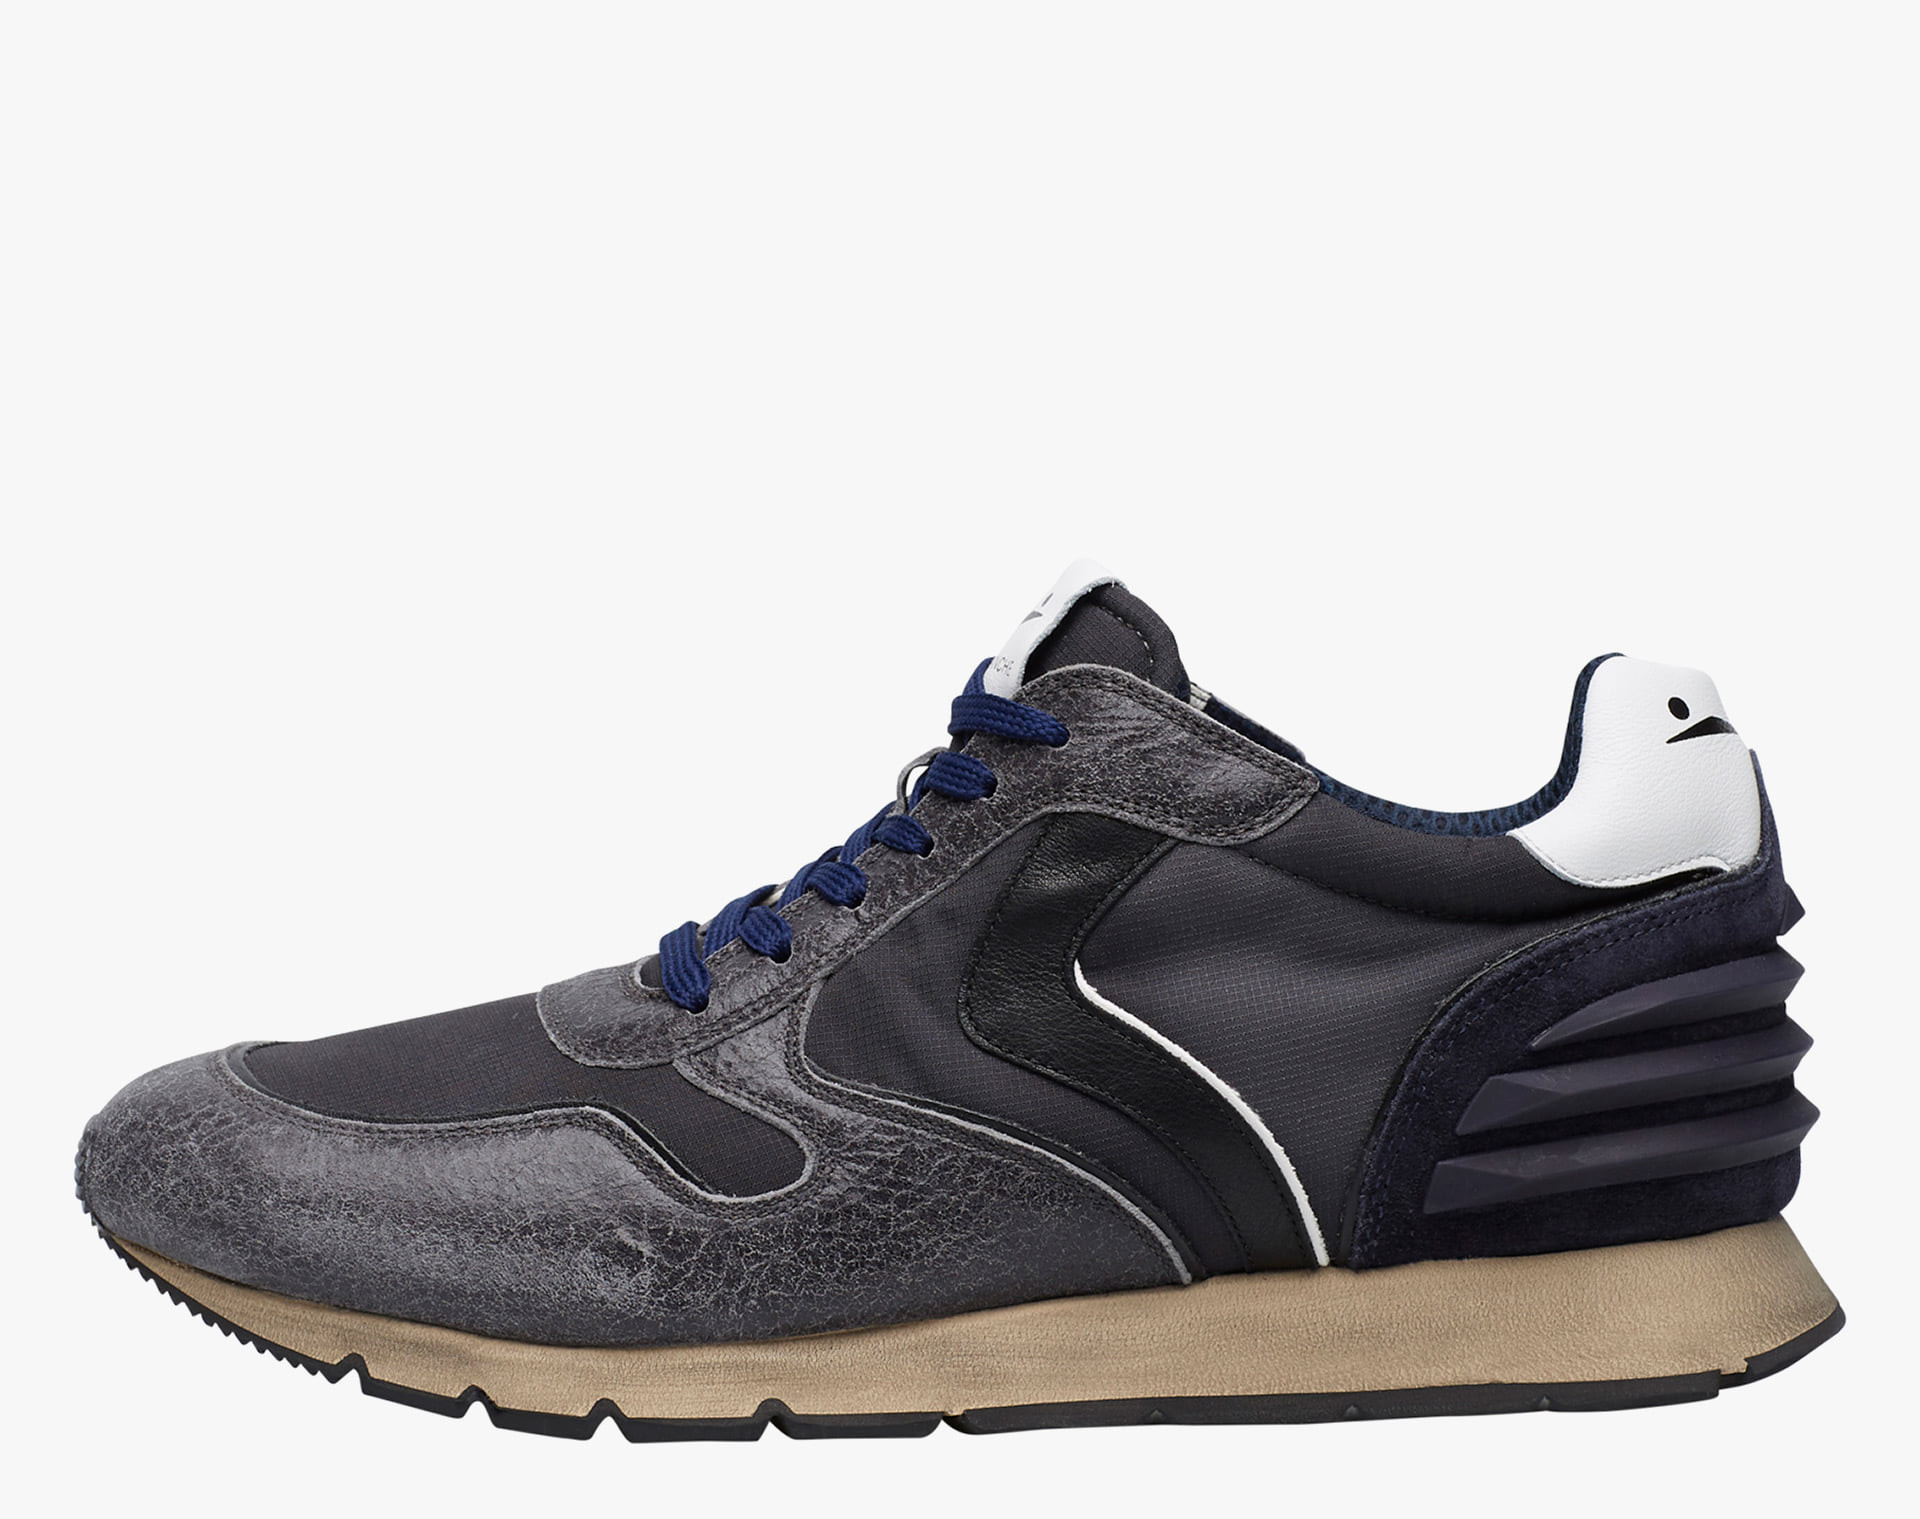 LIAM POWER - Leather and shaded nylon sneaker - Anthracite/Black/Blue